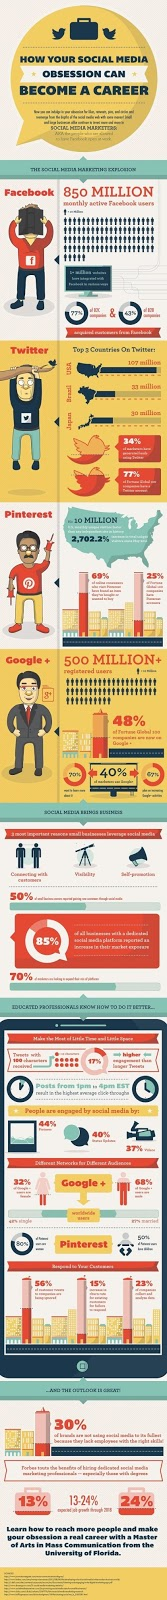 How your social media obsession can become a career -Infographic